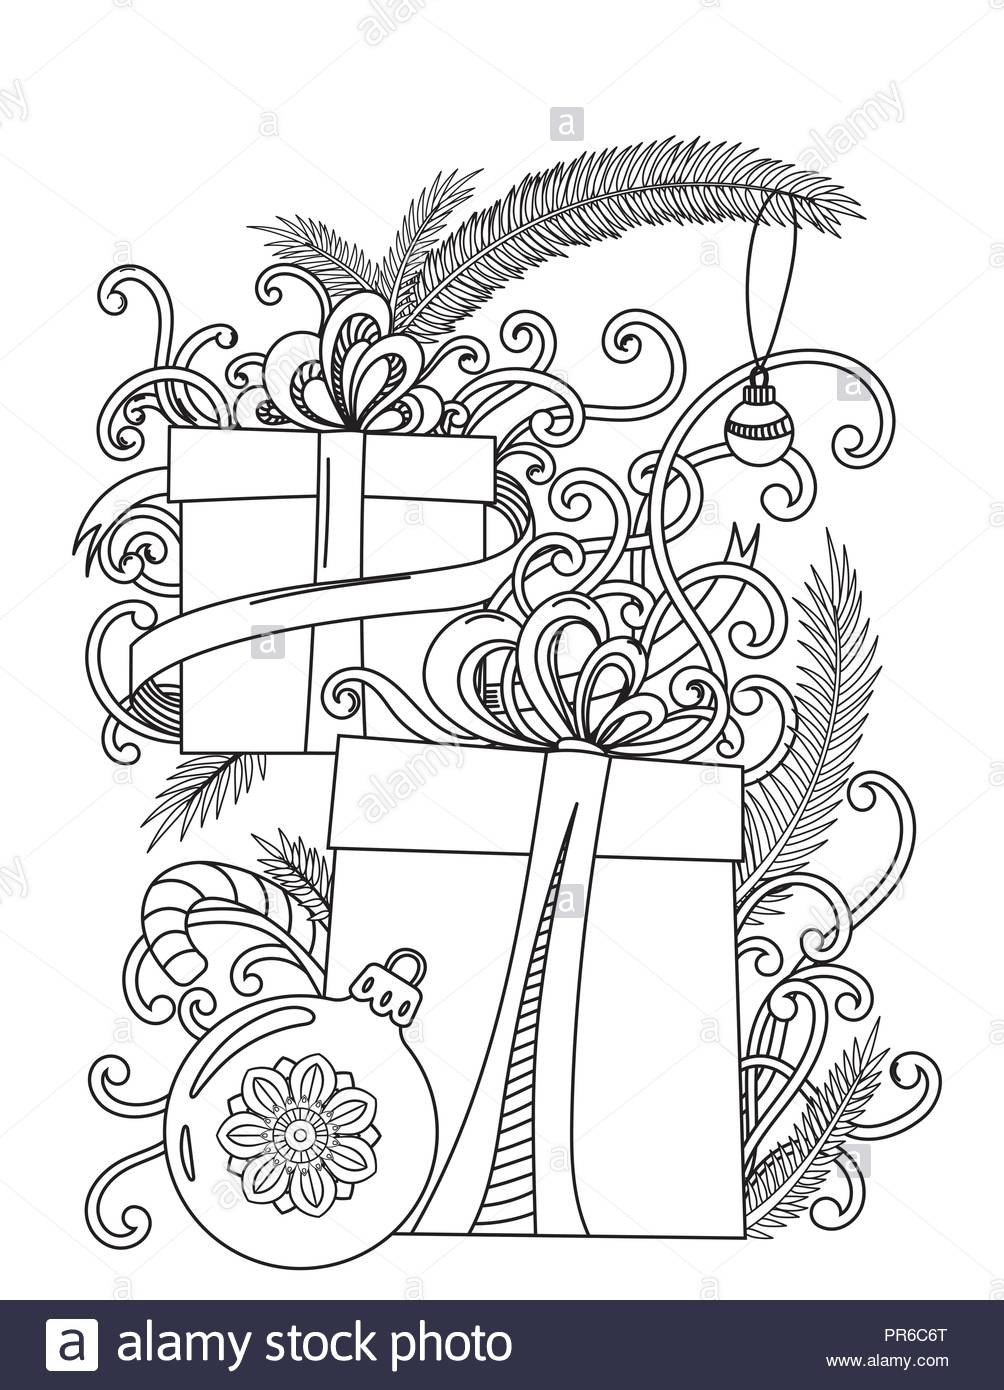 Christmas Coloring Pages With Instructions Page Adult Book Holiday Gifts And